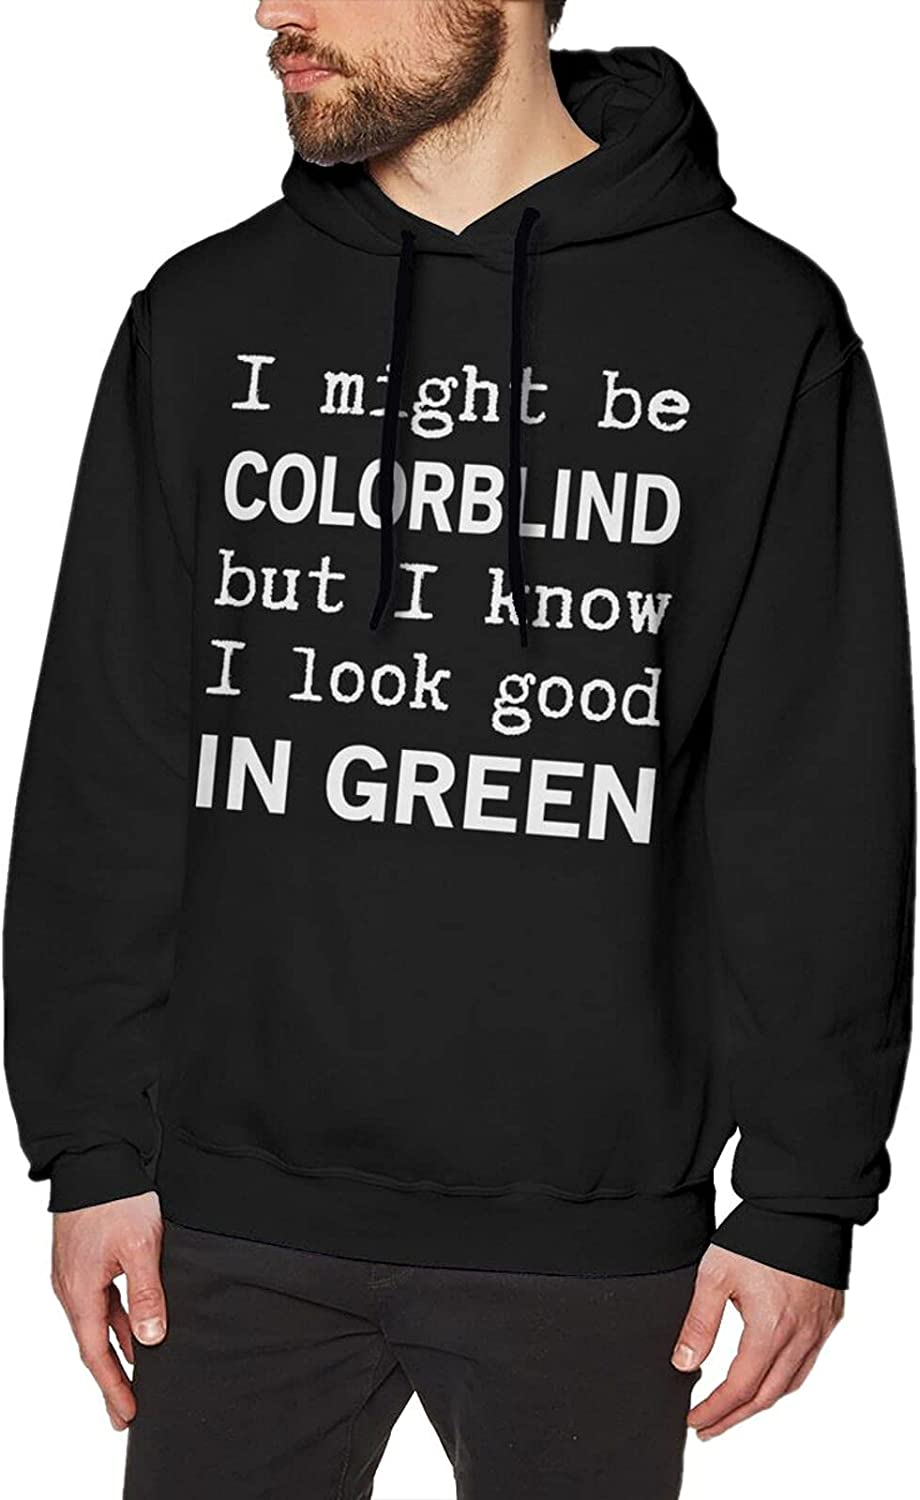 Red - Green Color Blindness Hoodies For Men Fashion Soft Cotton Sweatshirts Black